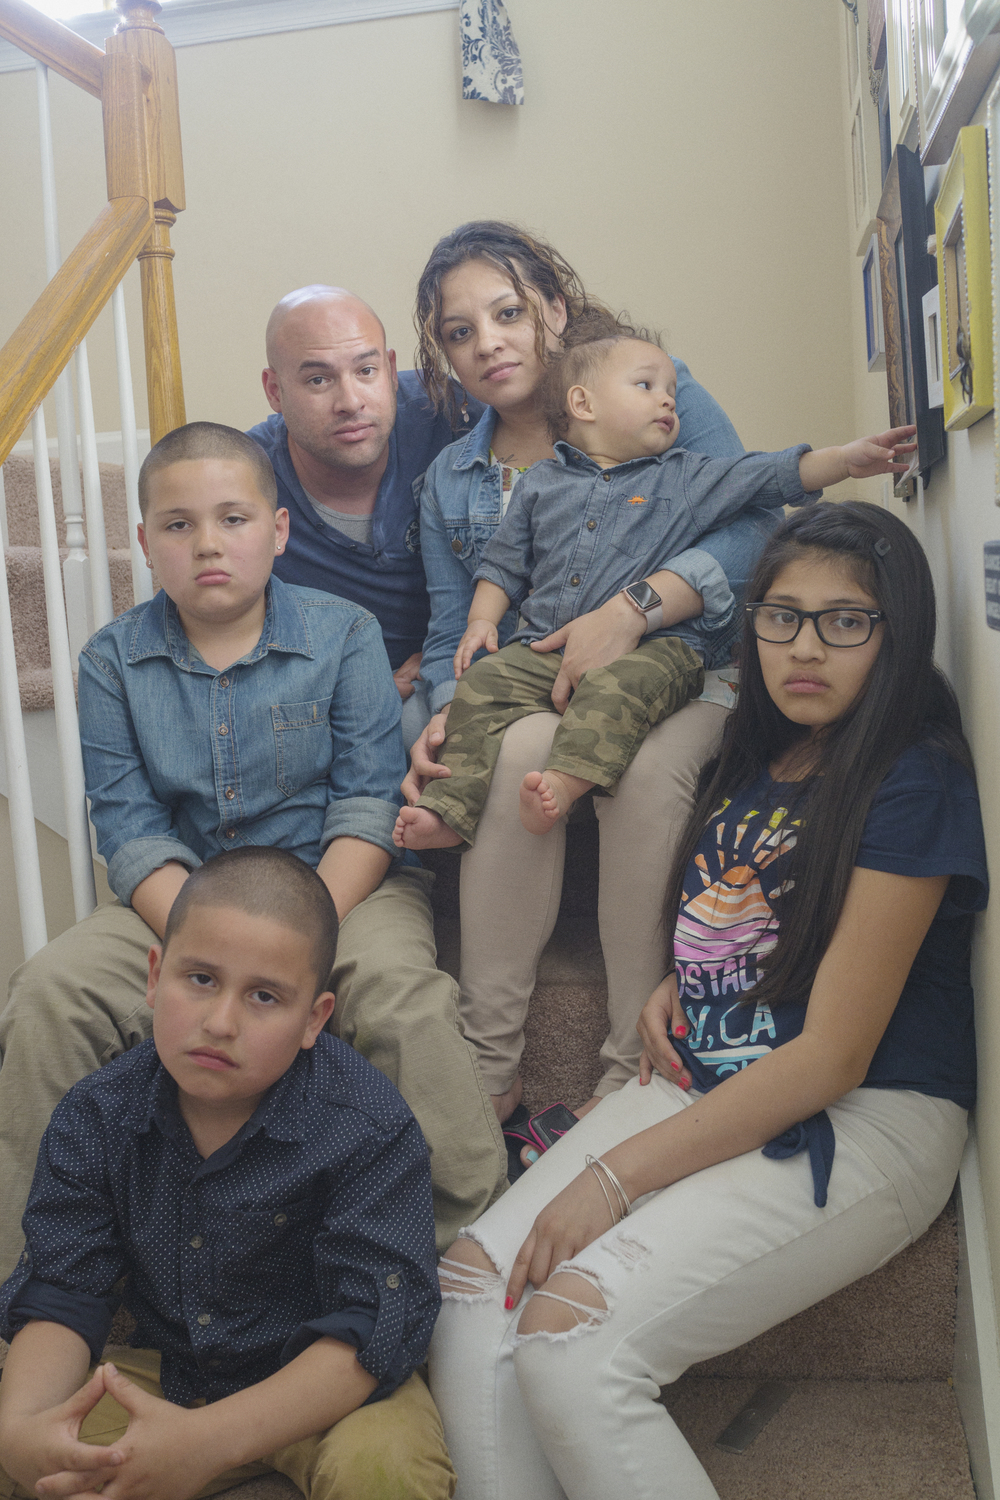 """A family portrait of the Ortiz Rivera family in Williamsburg, Virginia on April 16, 2016, nearly six years after the death of Javier Ortiz Rivera, who was killed in action in Afghanistan in 2010. Bottom Left, Anthony Ortiz Rivera, 8, above Andrew Ortiz Rivera, 11, Juan """"Junior"""" Vasquez Jr., Veronica Ortiz Rivera, Kaleb Vasquez, 16 months and Alyssa Ortiz Rivera."""